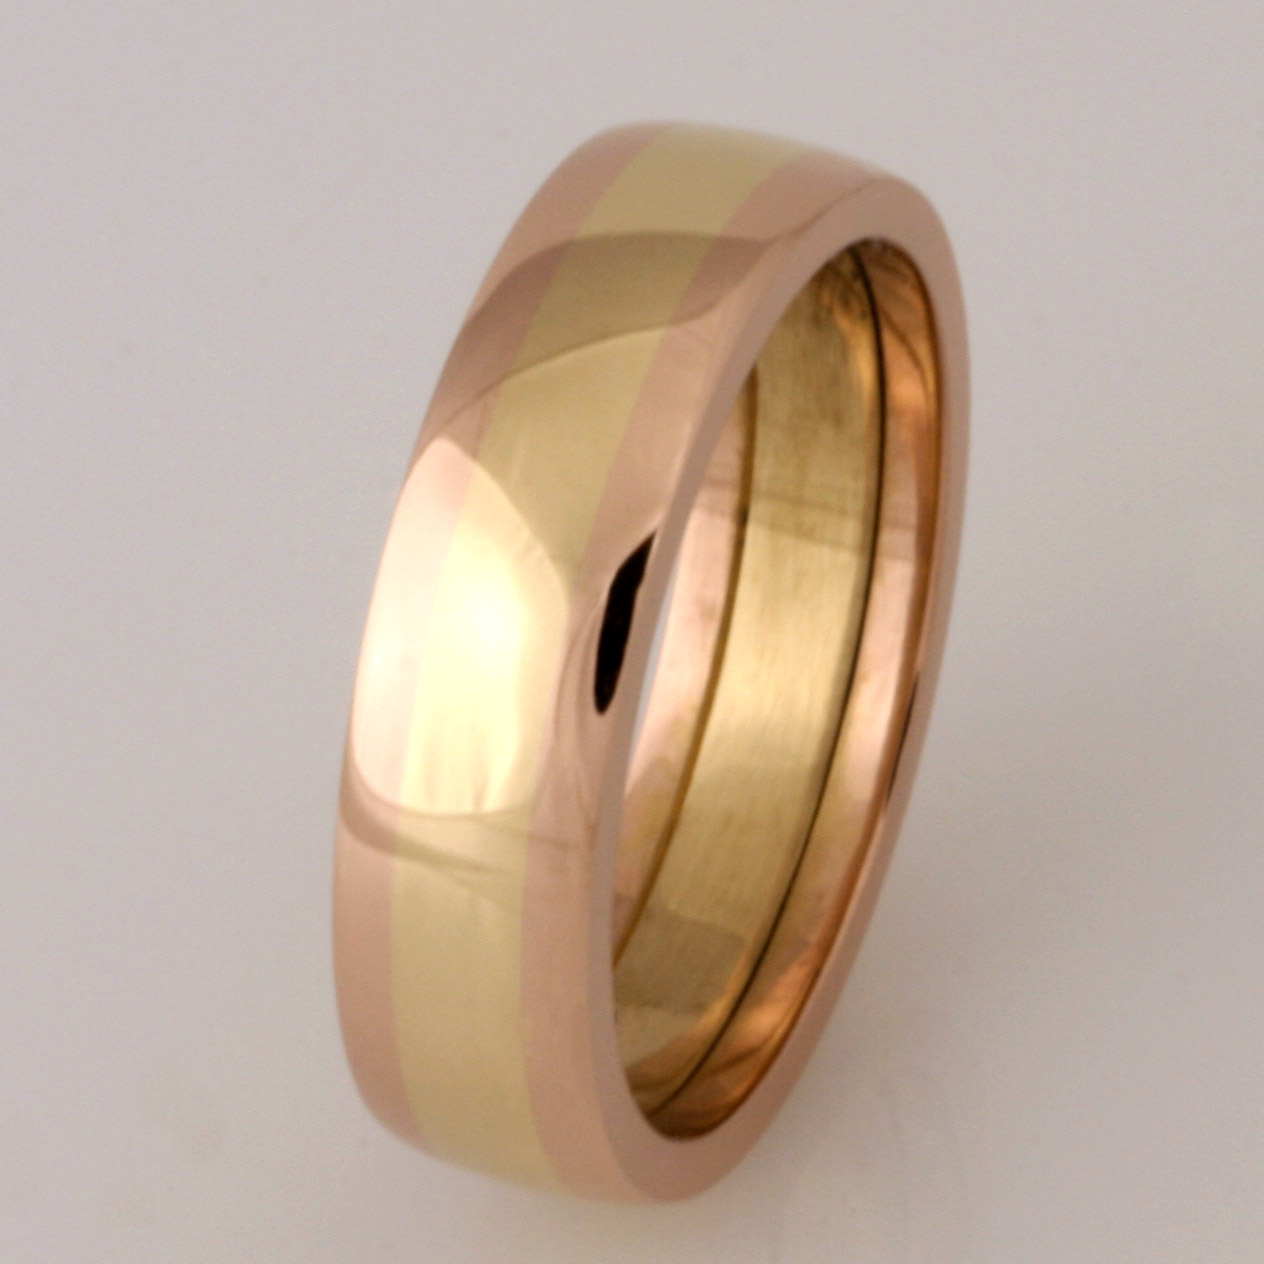 Ladies handmade 18ct yellow and rose gold wedding ring